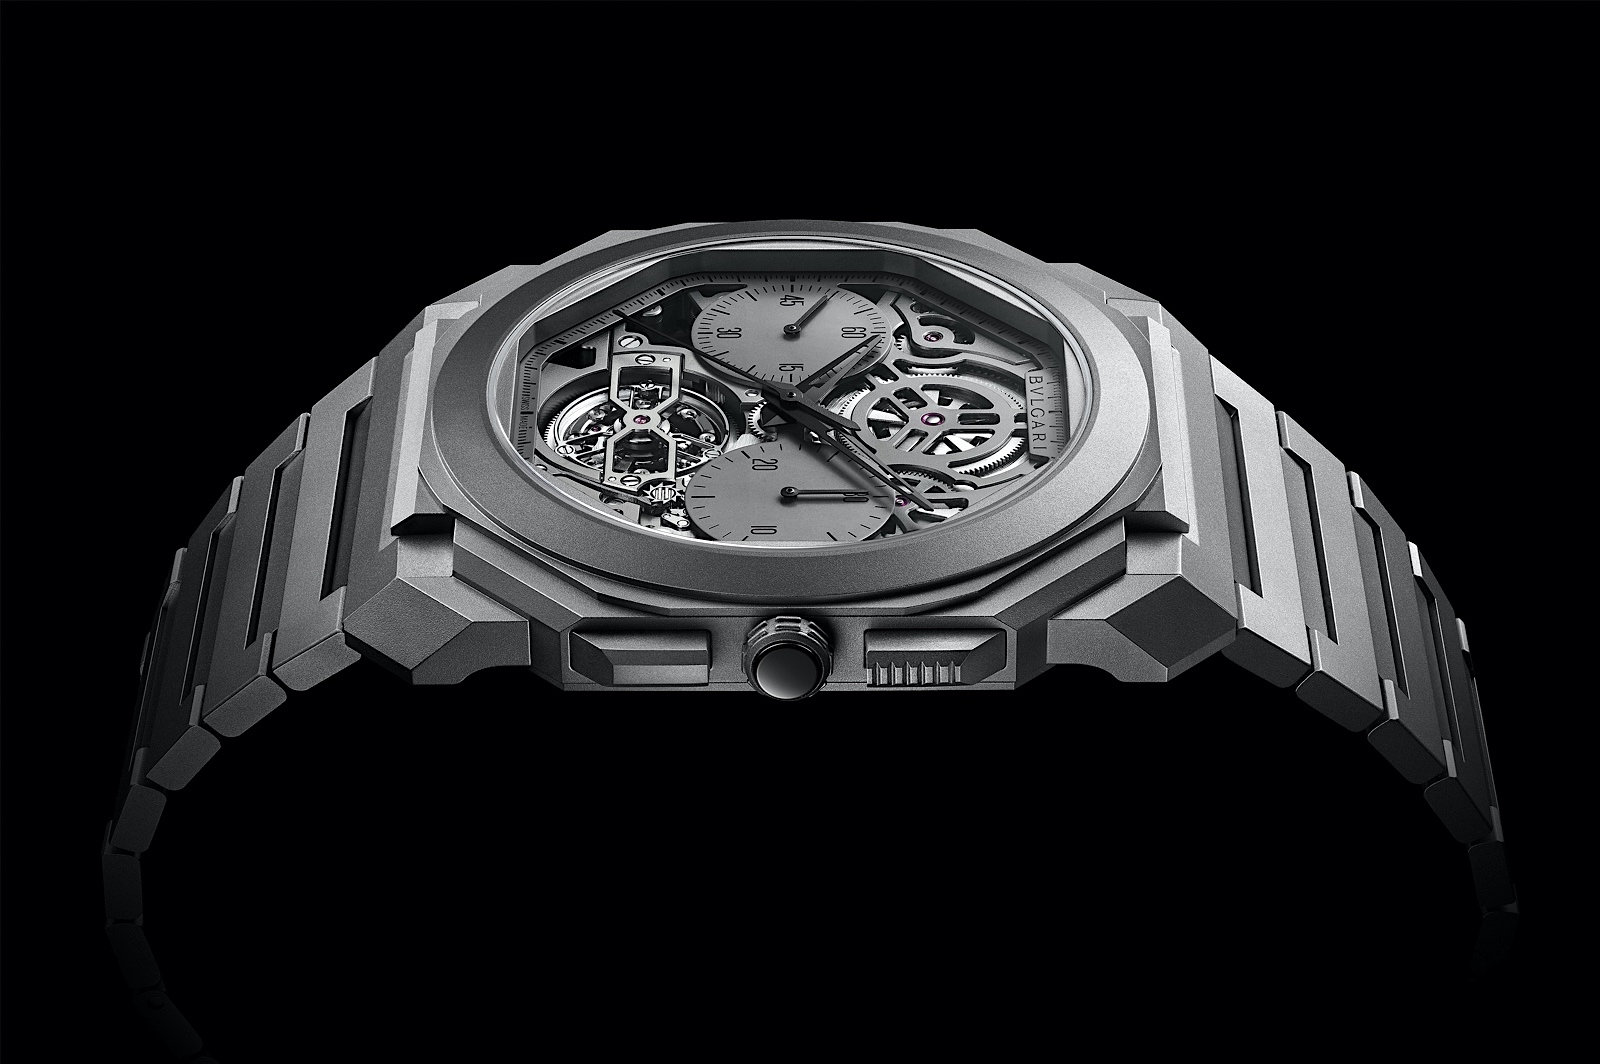 Bvlgari en los Geneva Watch Days - Octo Finissimo Tourbillon Chronograph Skeleton Automatic